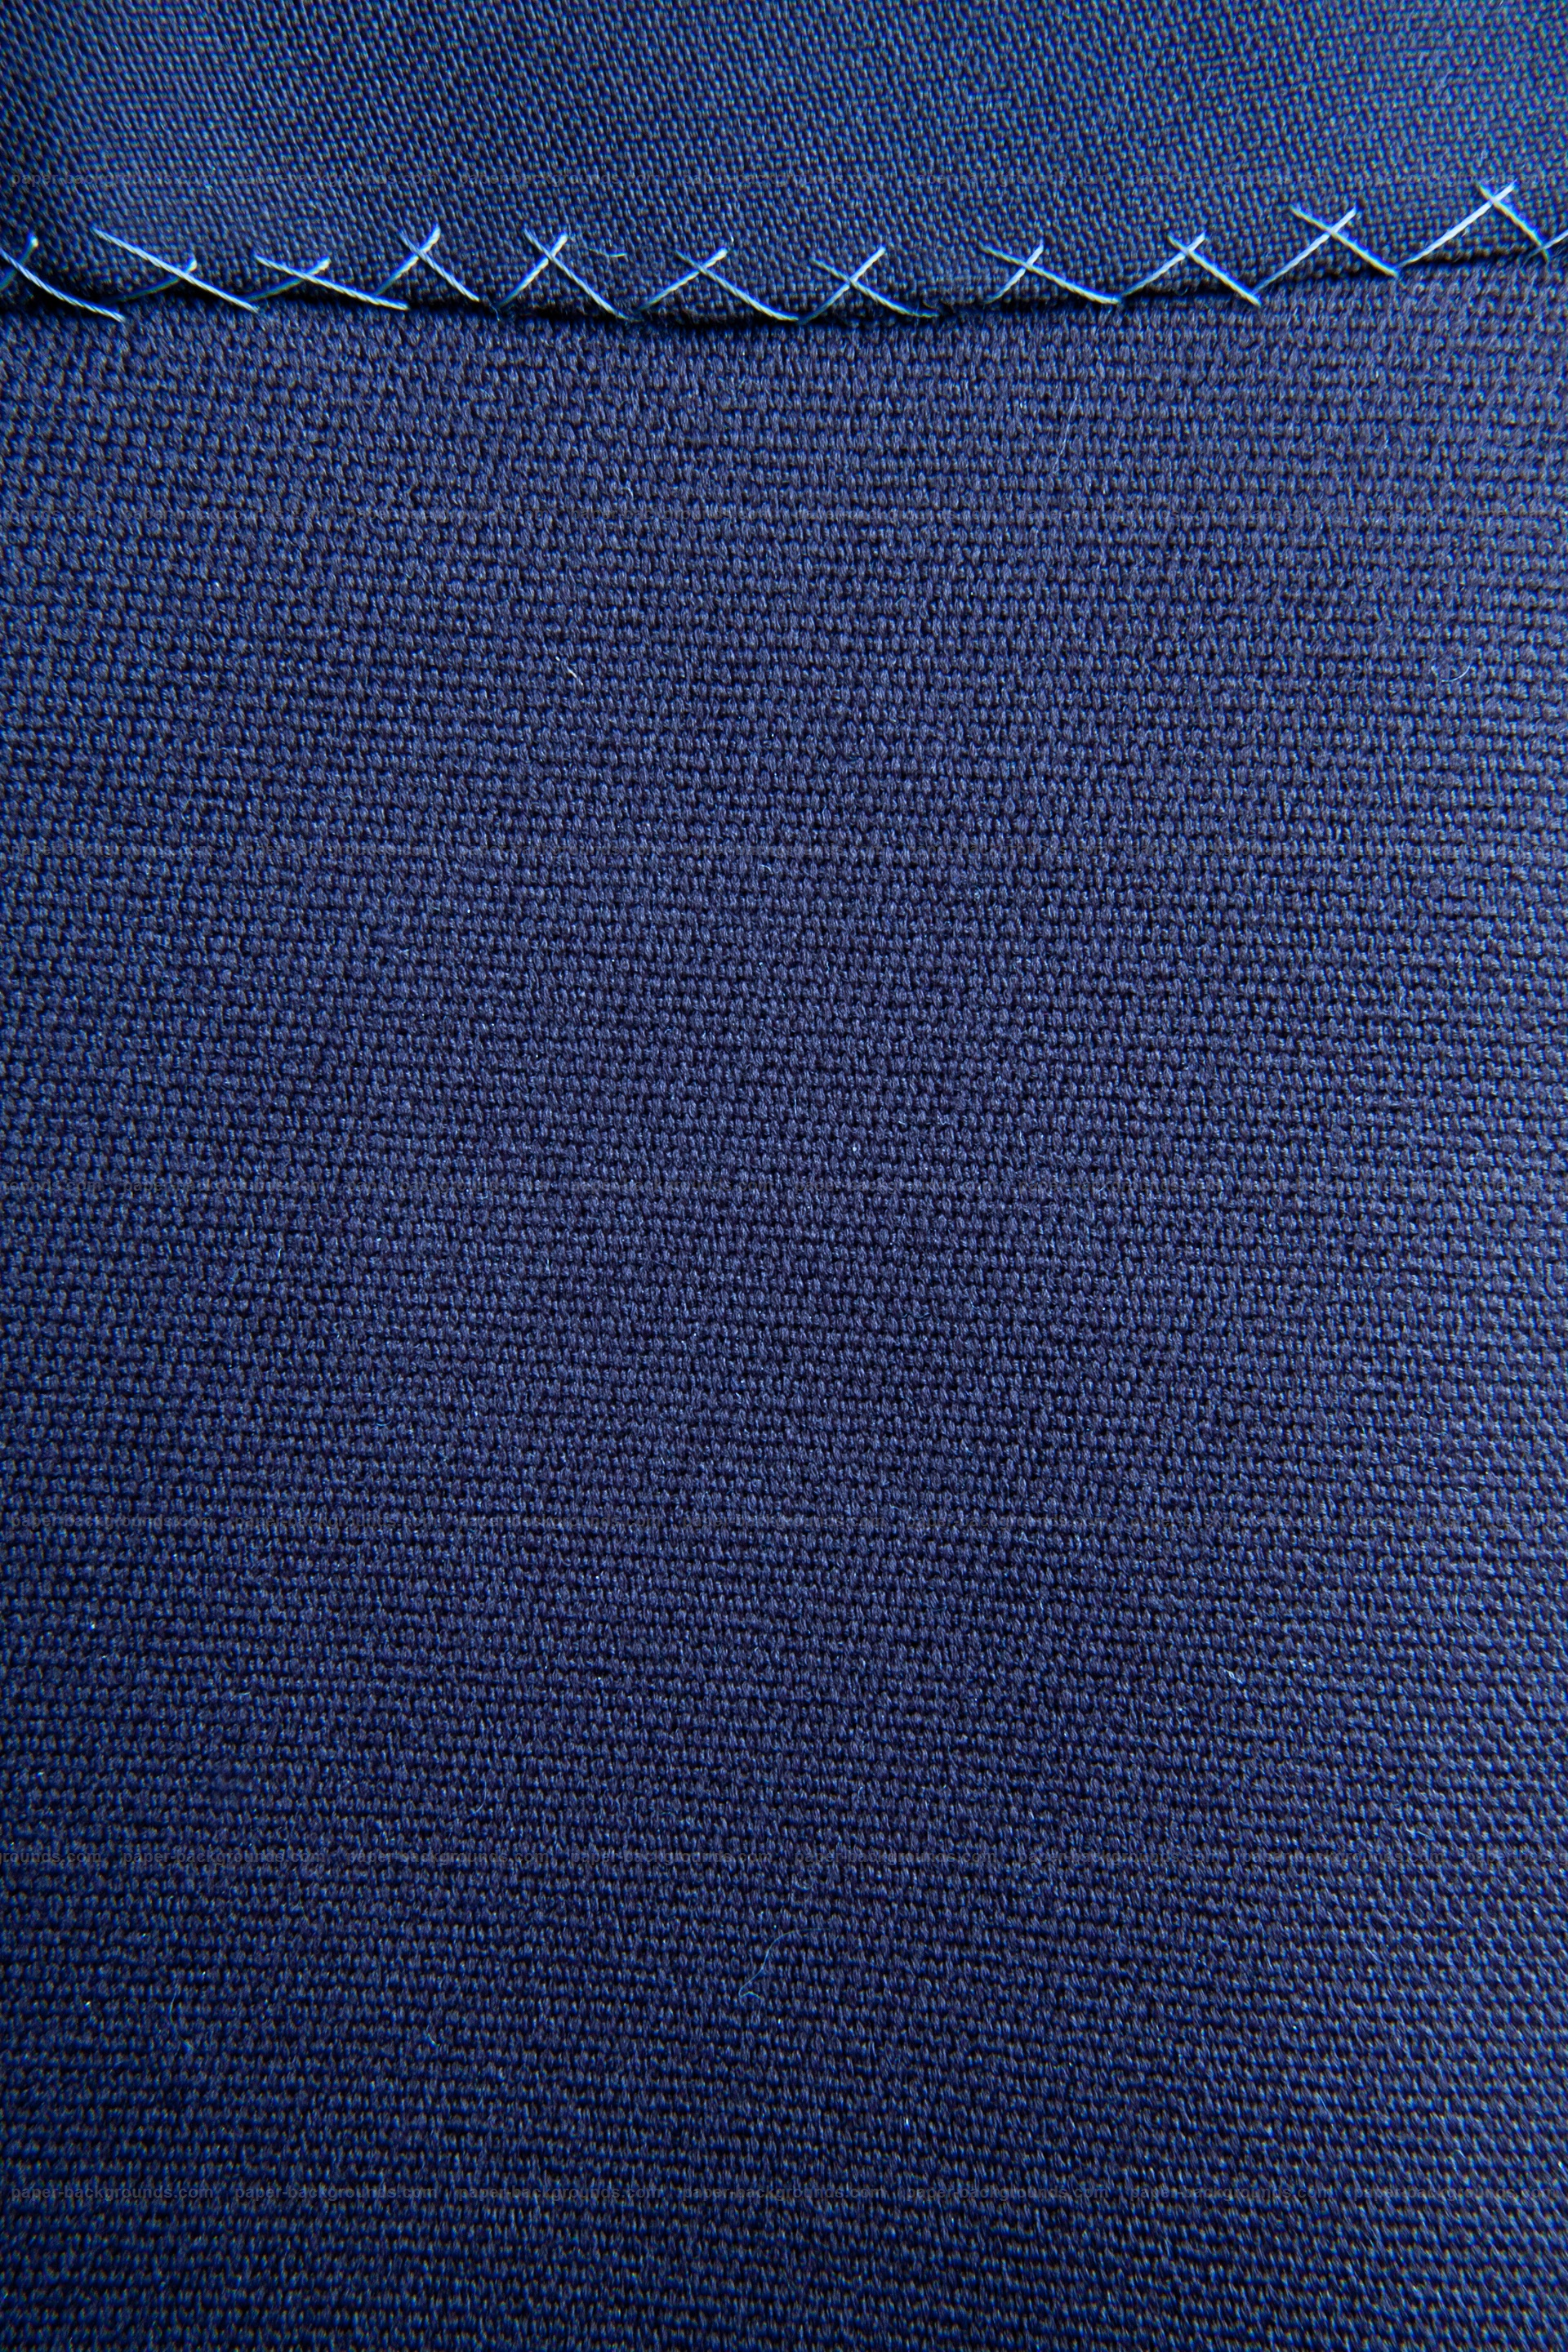 Stitched Blue Fabric Texture Background HD